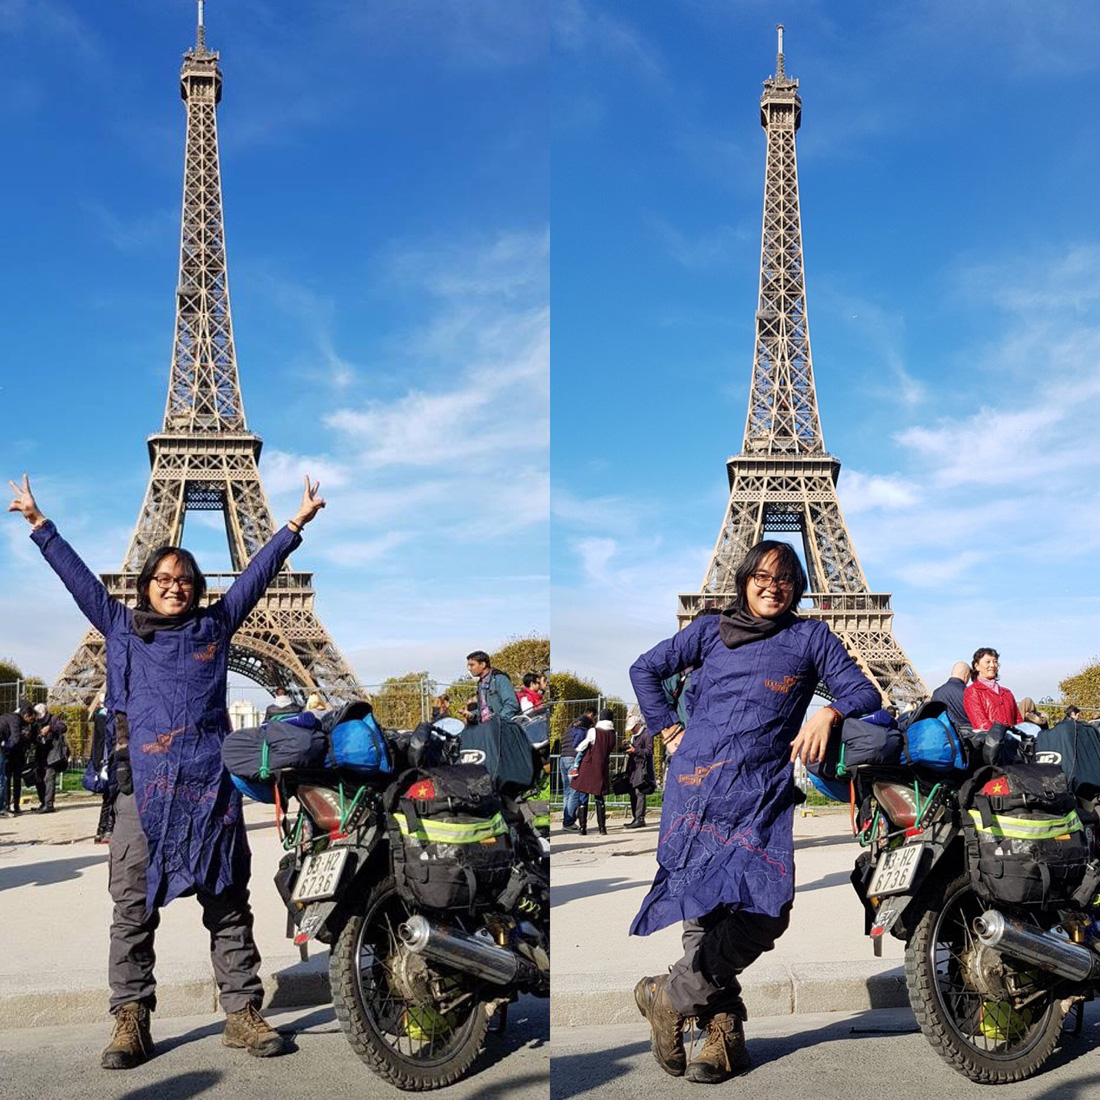 Dang Khoa poses with his beloved bike which he named The Memo at The Eiffel Tower in Paris - Photo by courtesy of Dang Khoa